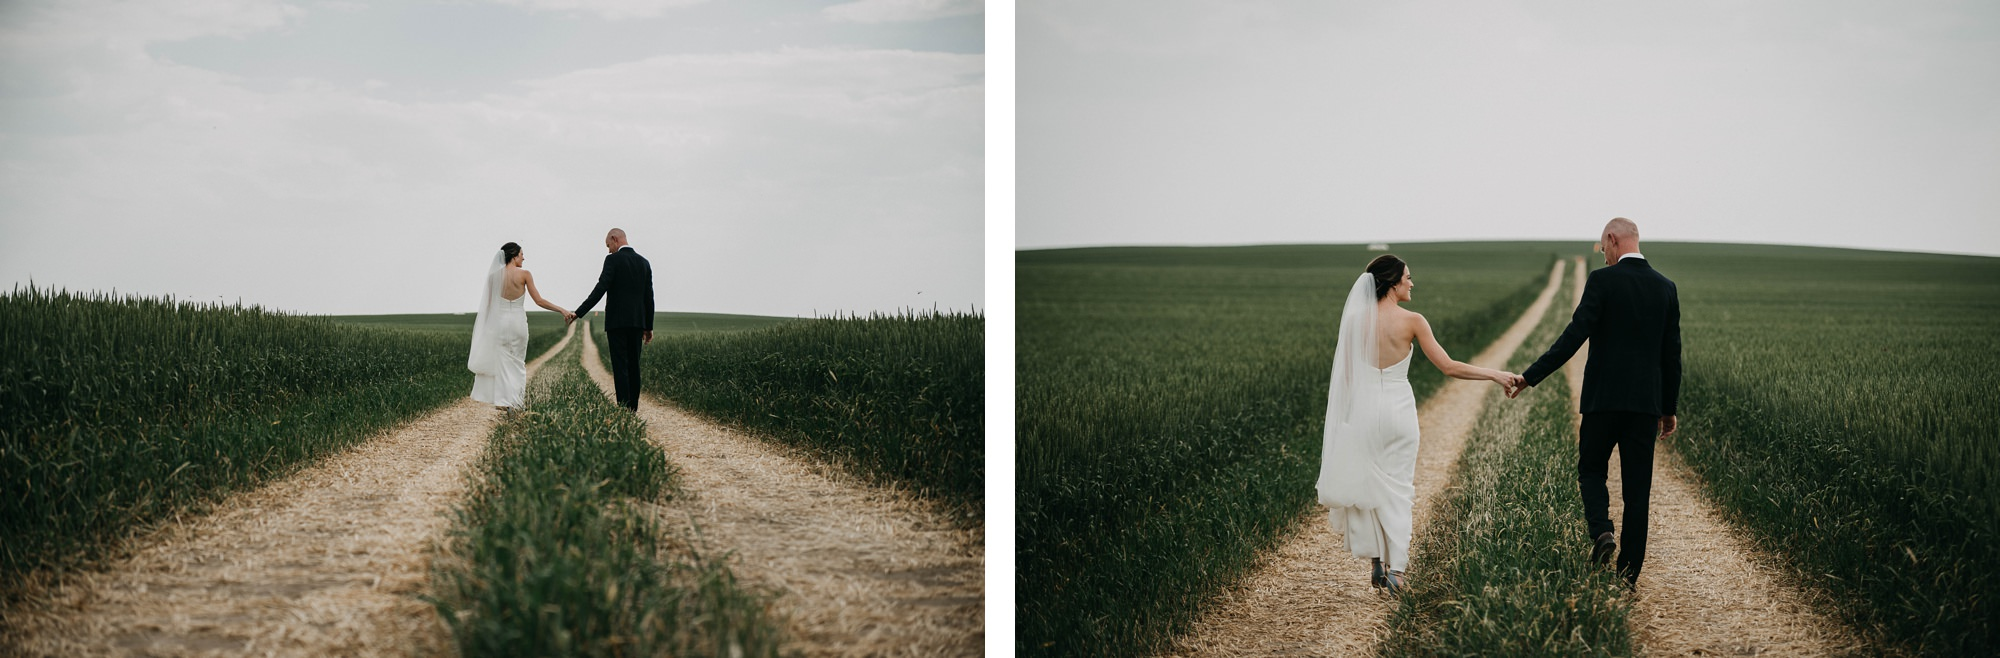 bride and groom walking through farmers field in bridal portraits during farm wedding